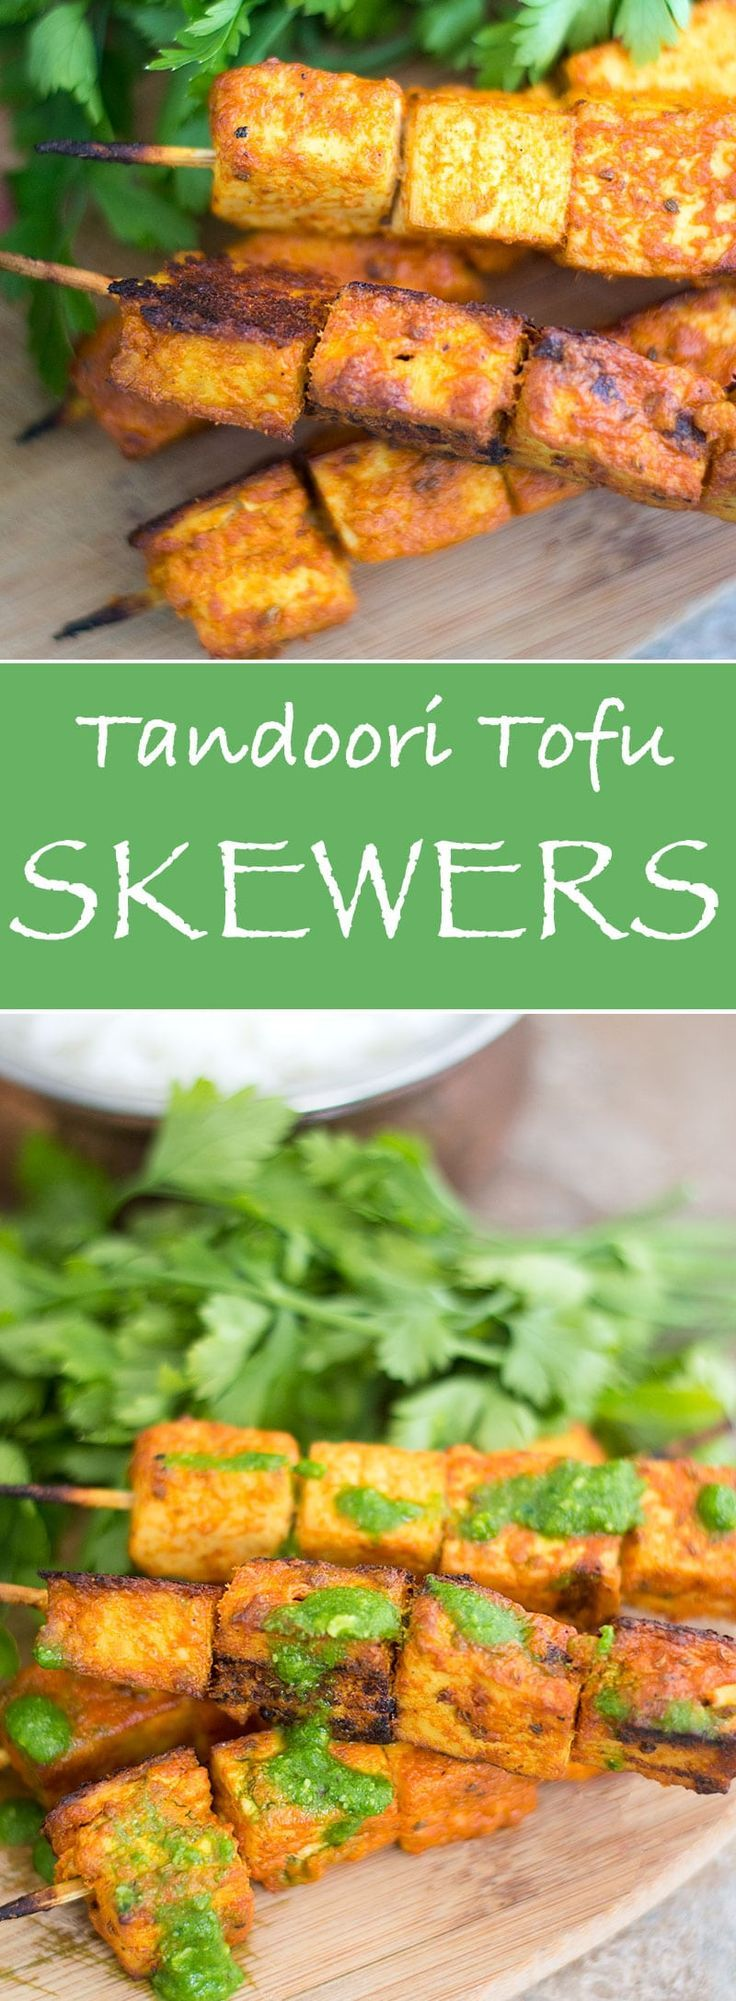 How do You Make Tofu Delicious? Marinate Them in Indian Spices and Oven Roast. This Easy Tandoori Tofu are Great Appetizers to Any Indian Feast